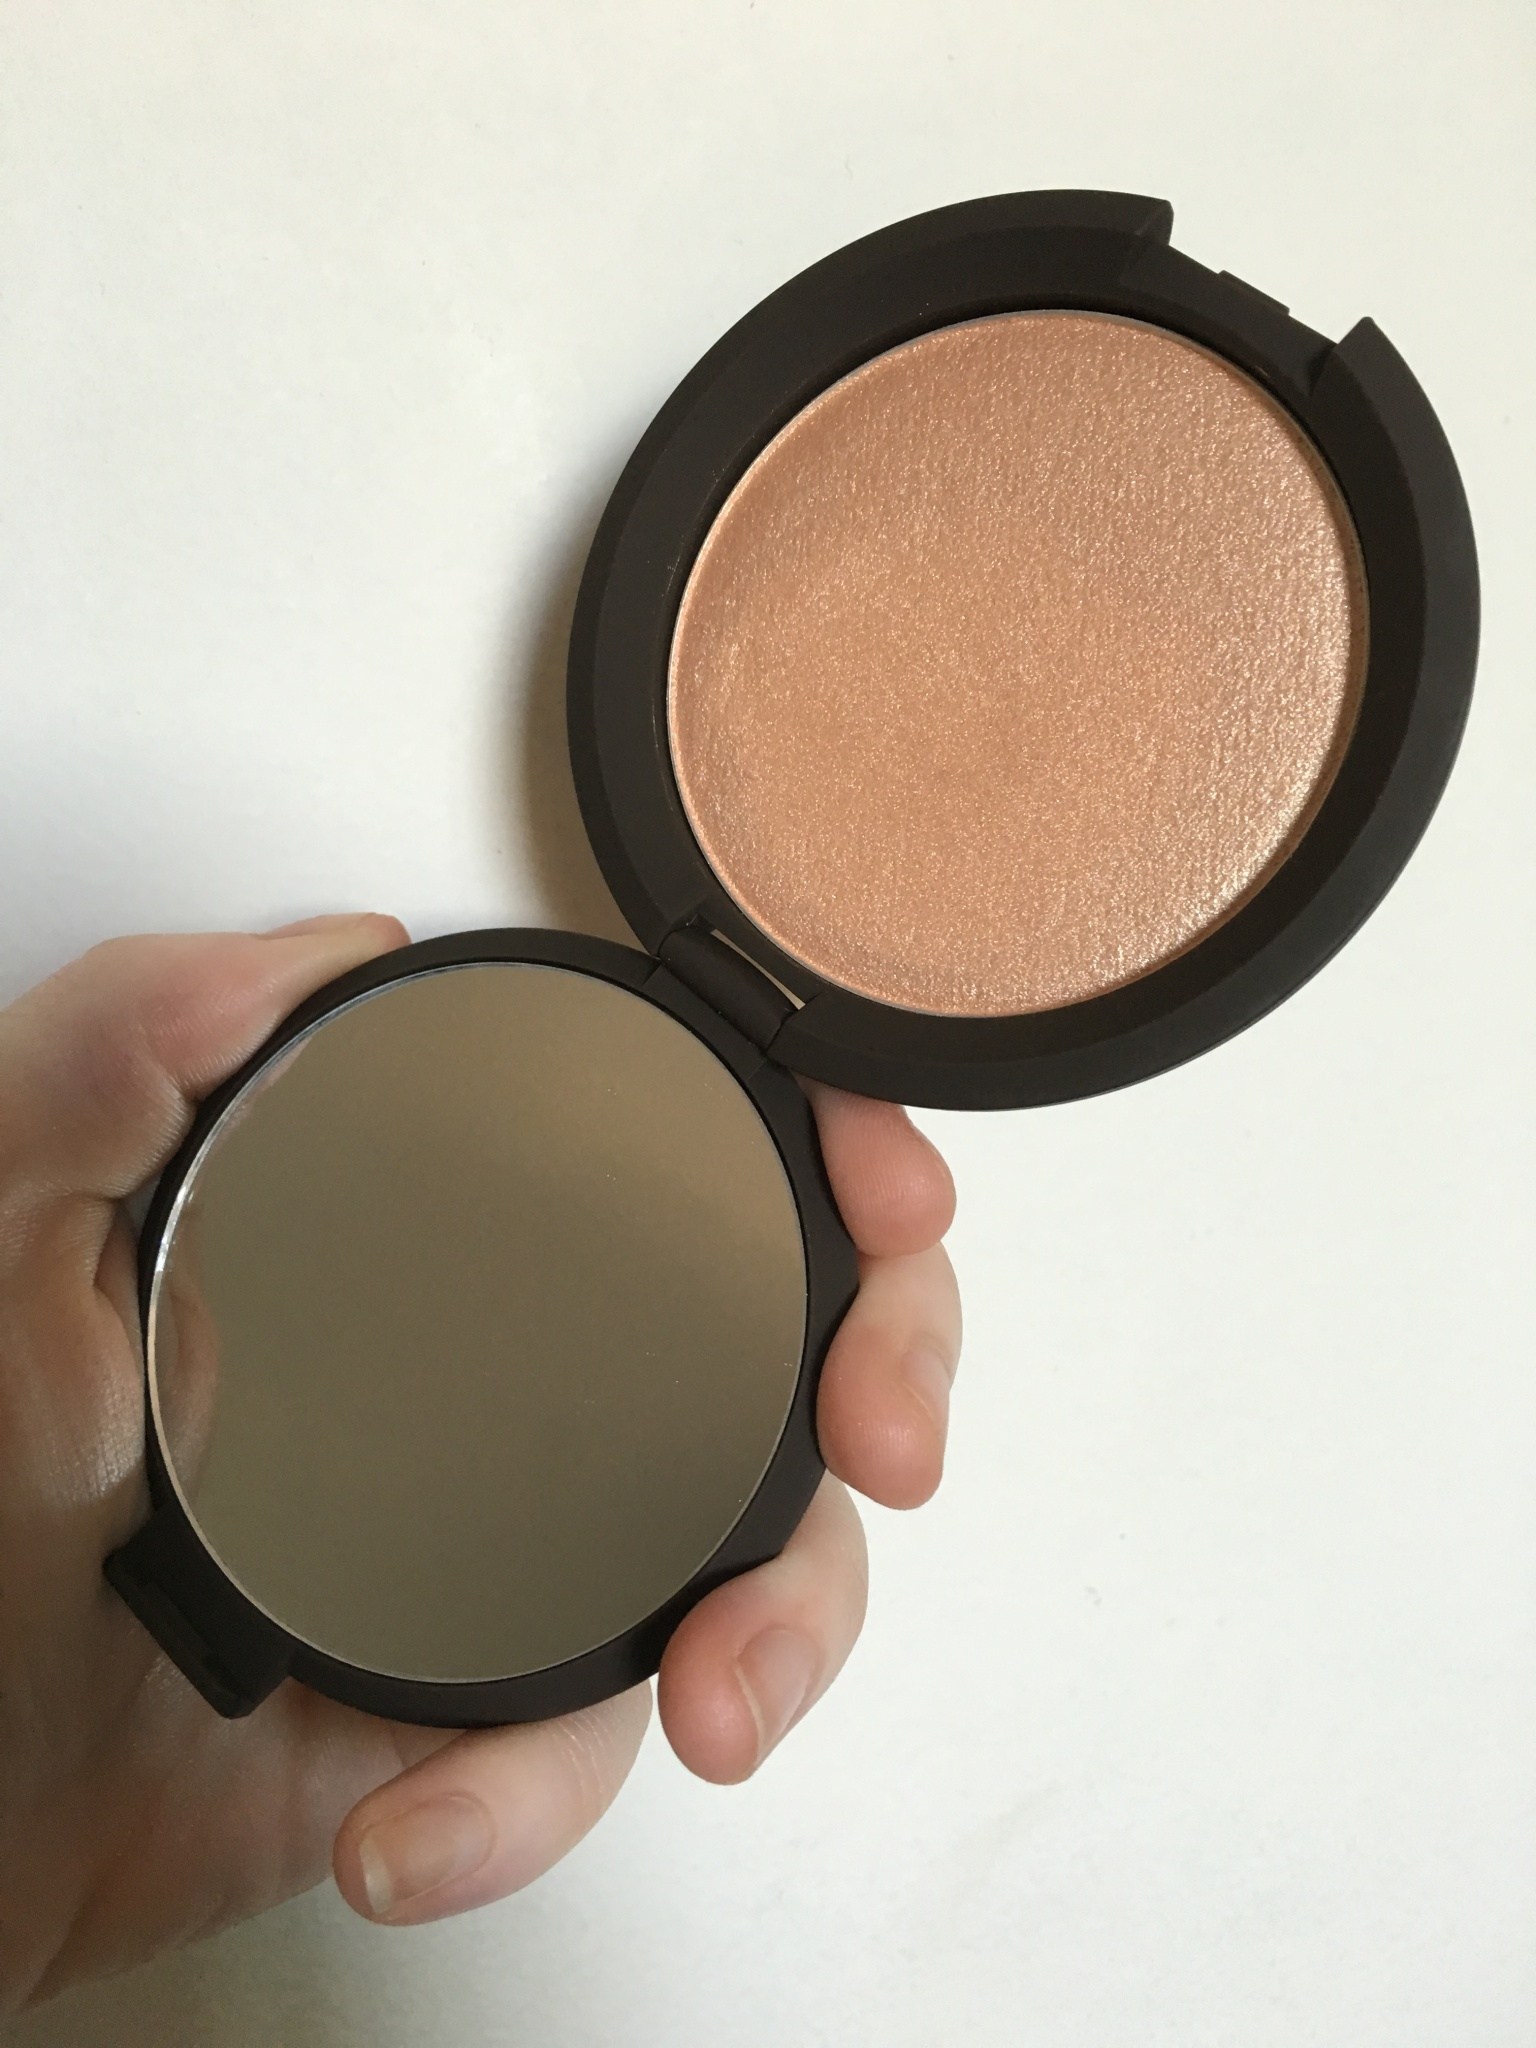 Review: Becca x Jaclyn Hill Shimmering Skin Perfector in Champagne Pop